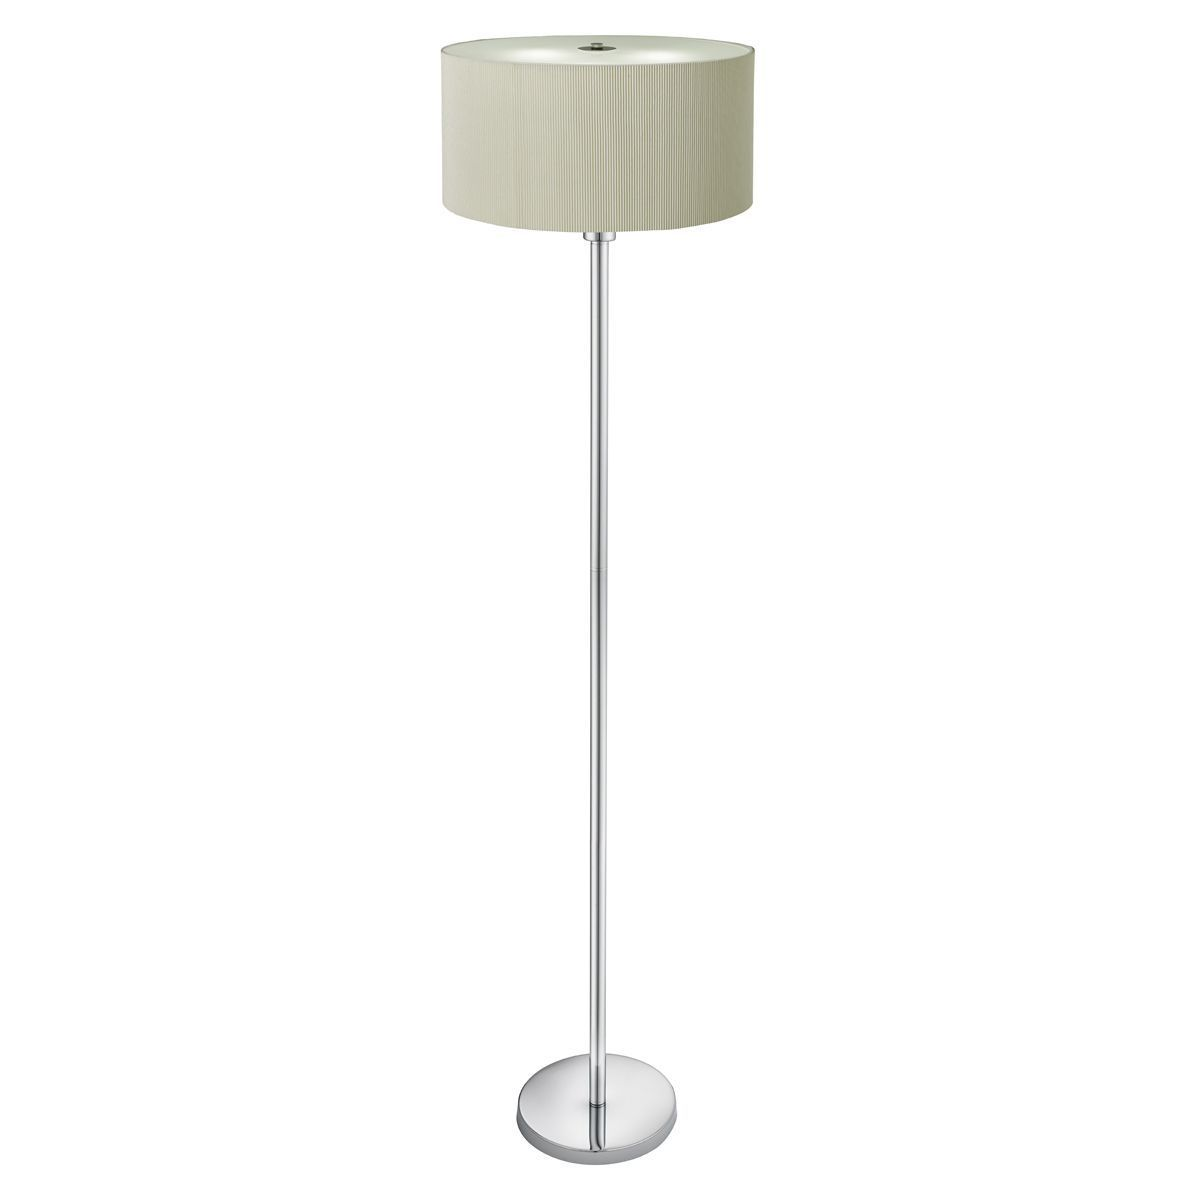 drum pleat 3 light floor lamp cream pleated shade frosted glass diffuser 5663 3cr. Black Bedroom Furniture Sets. Home Design Ideas